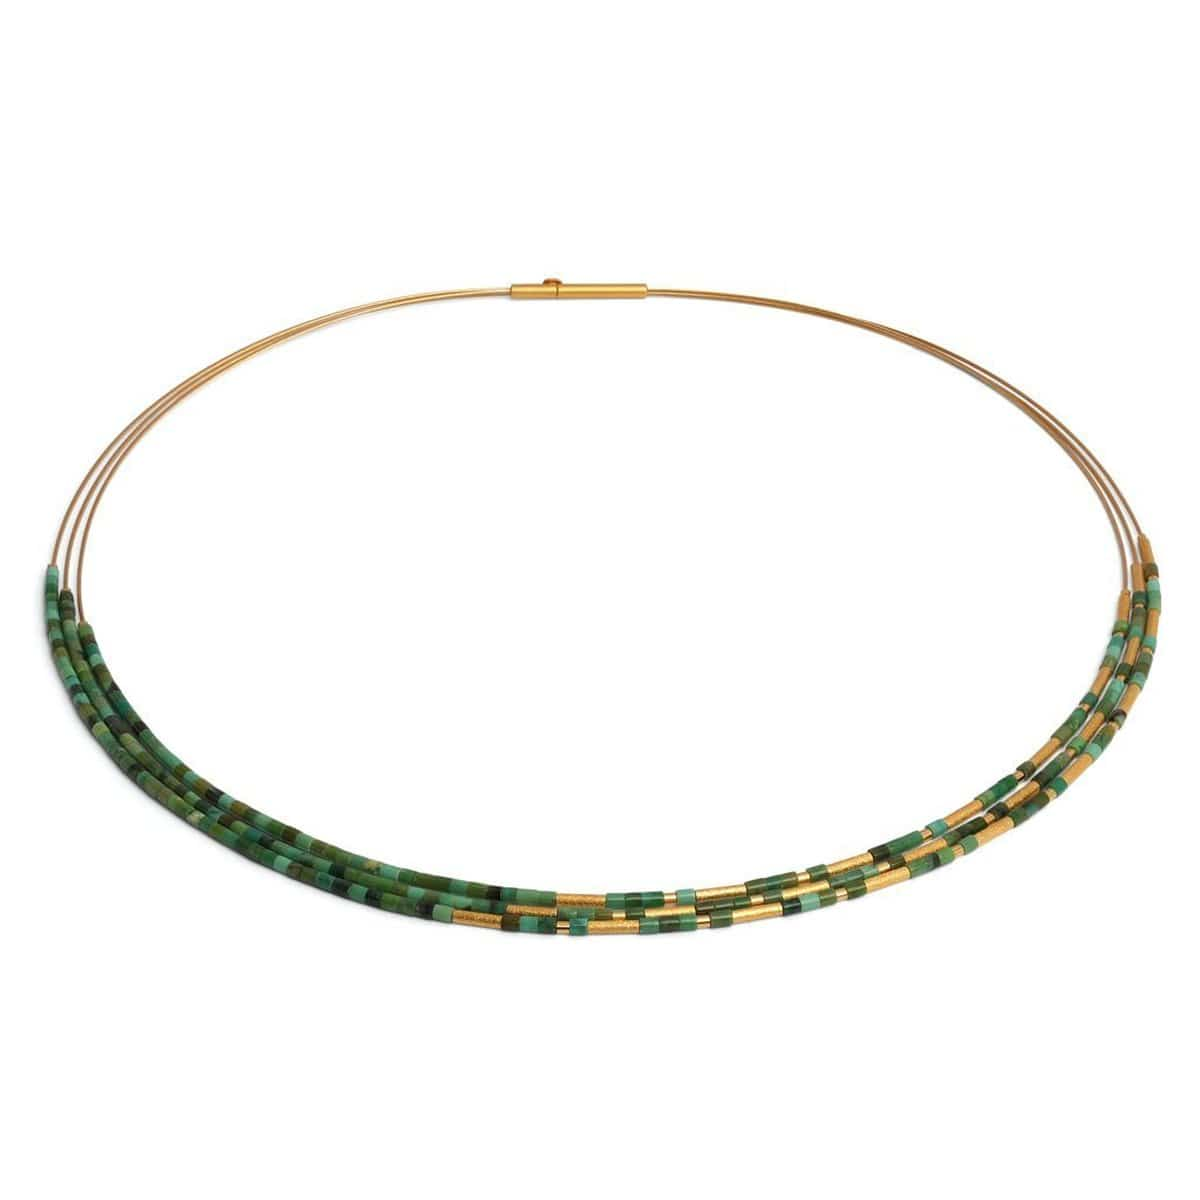 Clia Green Turquoise Necklace - 85231356-Bernd Wolf-Renee Taylor Gallery